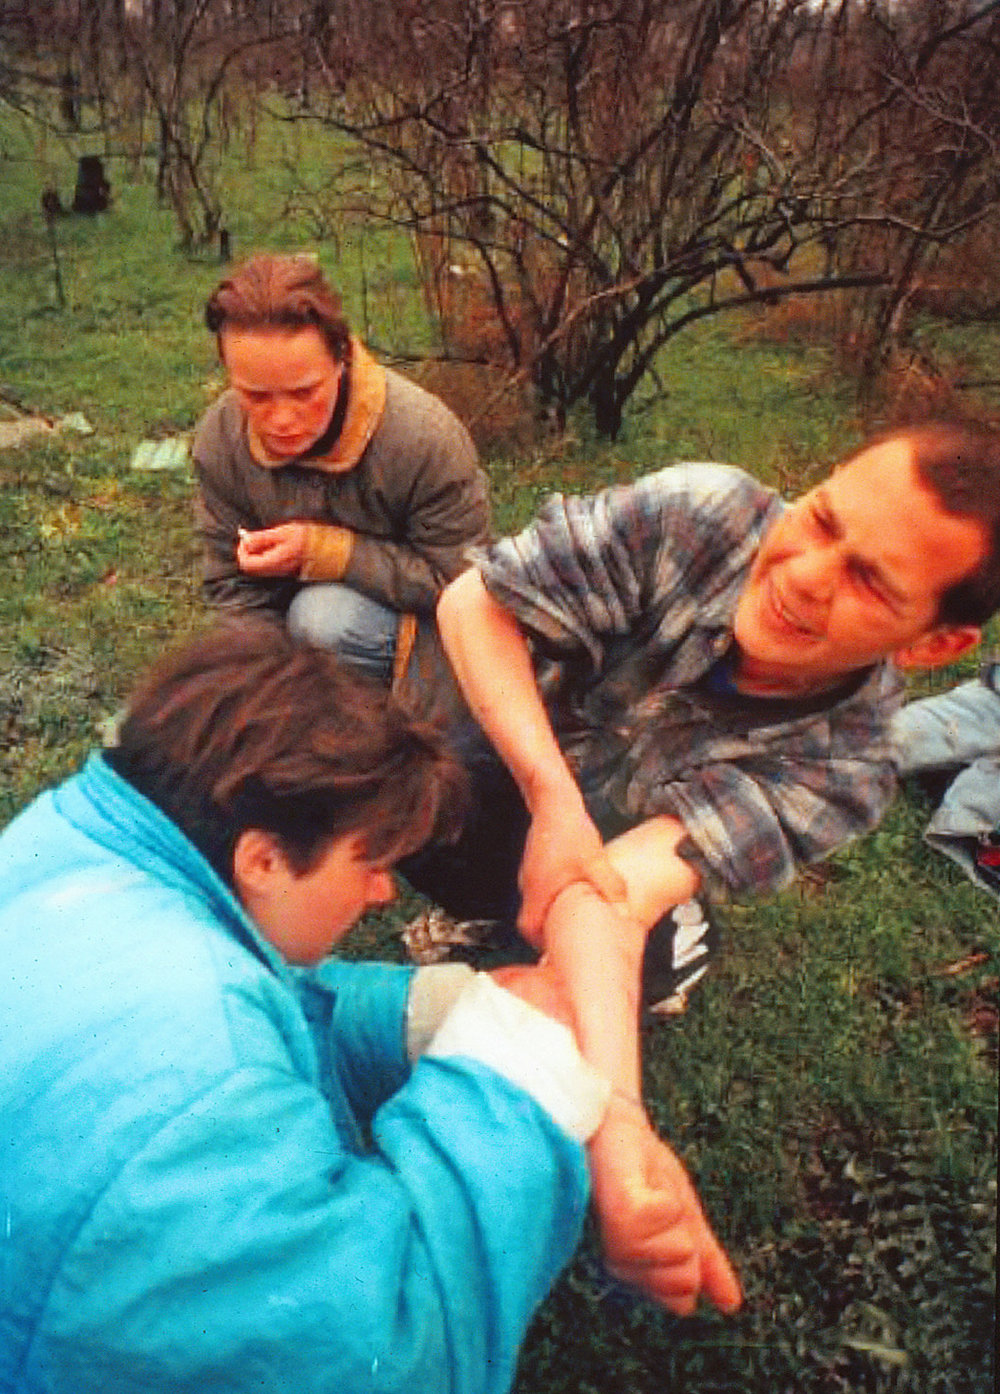 Teens-injecting-in-Odessa-Park-1997--Florescu-(deleted-4db43ed3-8cbefd-4e1f5d15).jpg